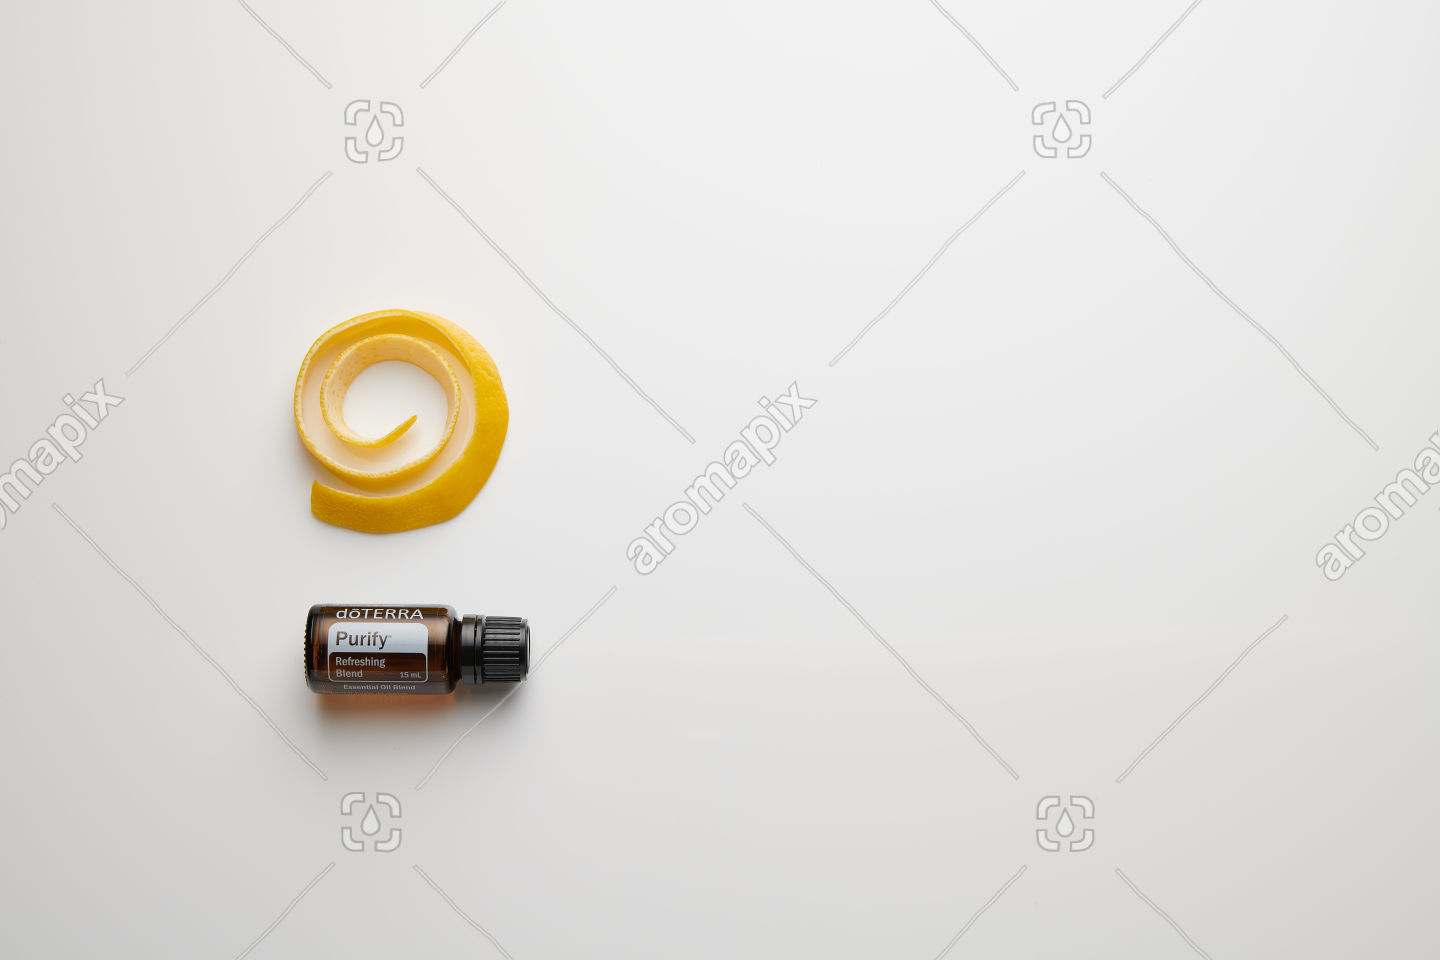 doTERRA Purify with lemon peel on white perspex